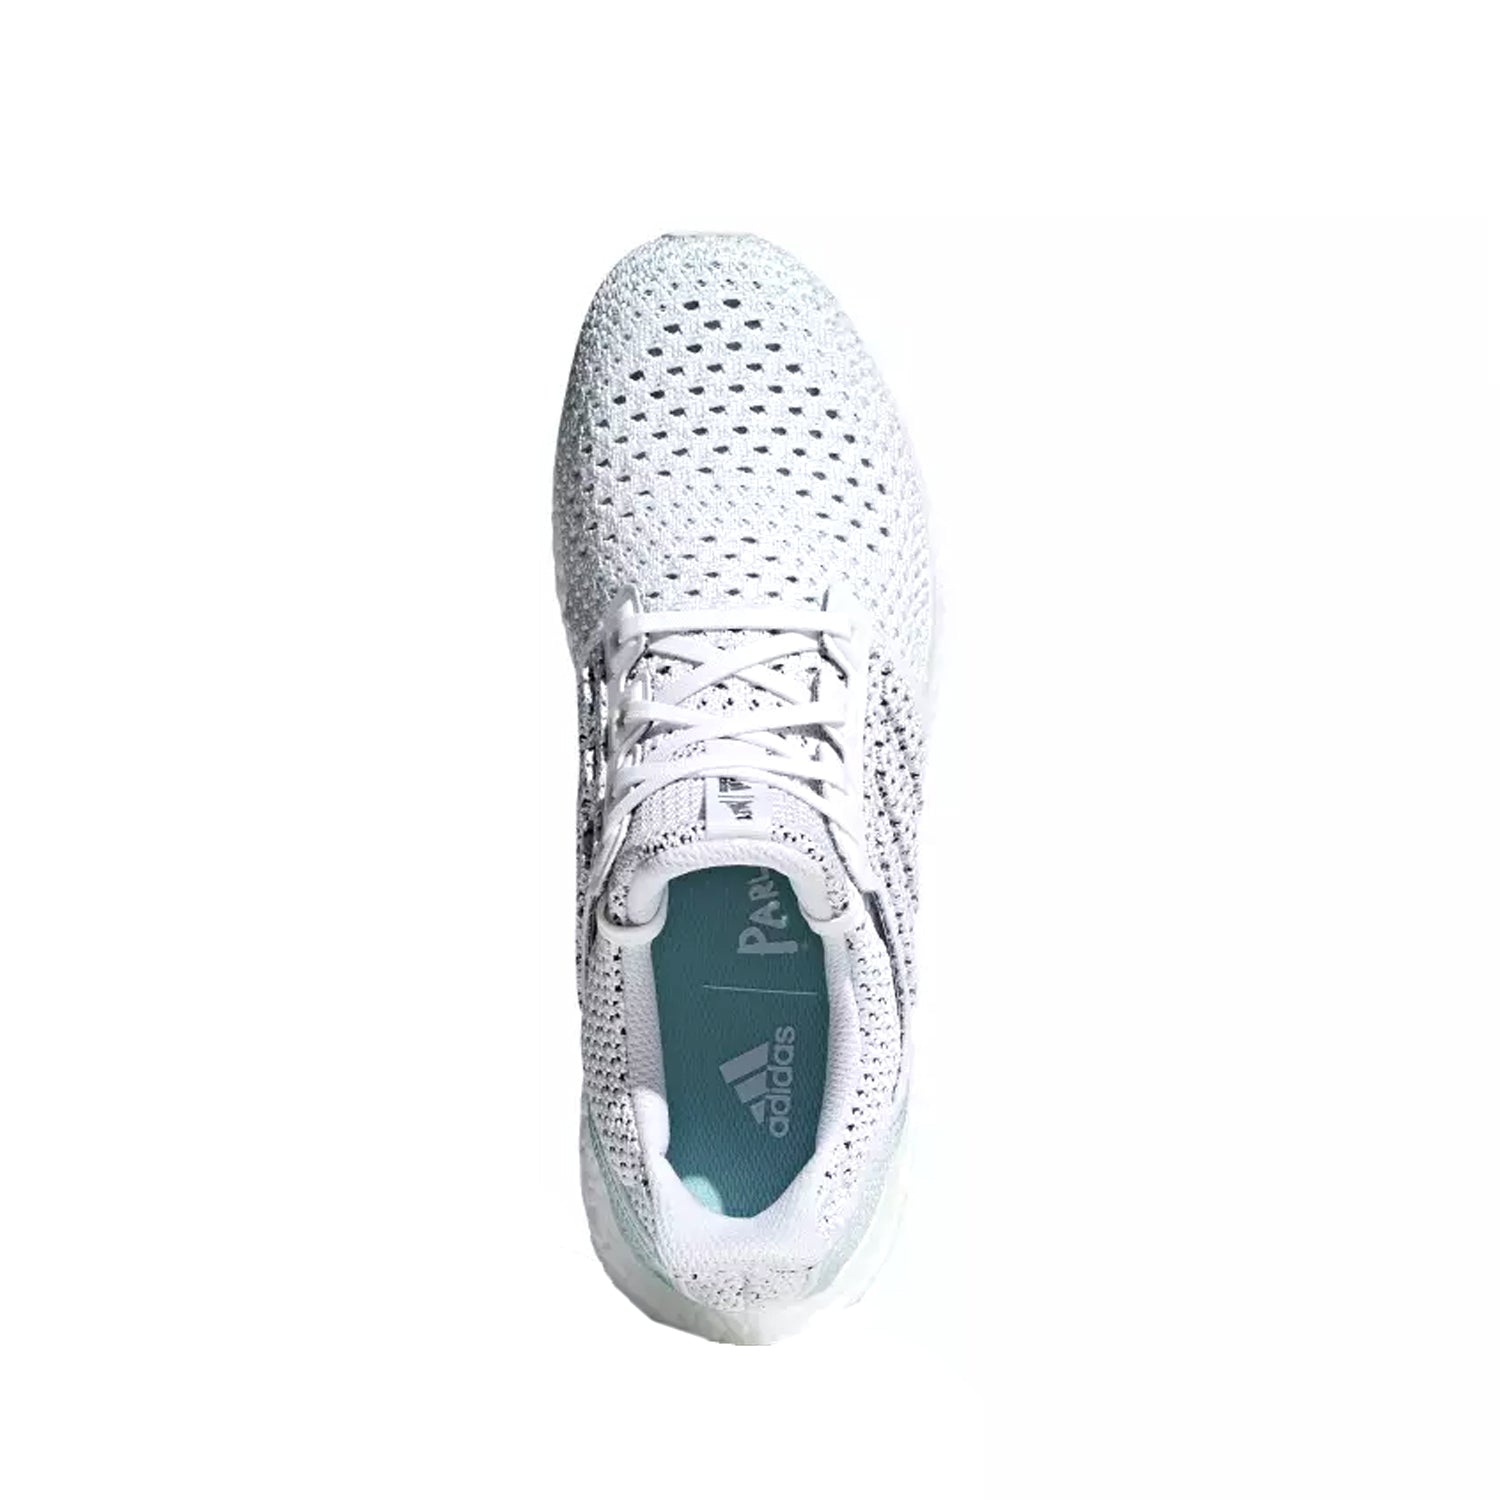 ULTRABOOST PARLEY LTD